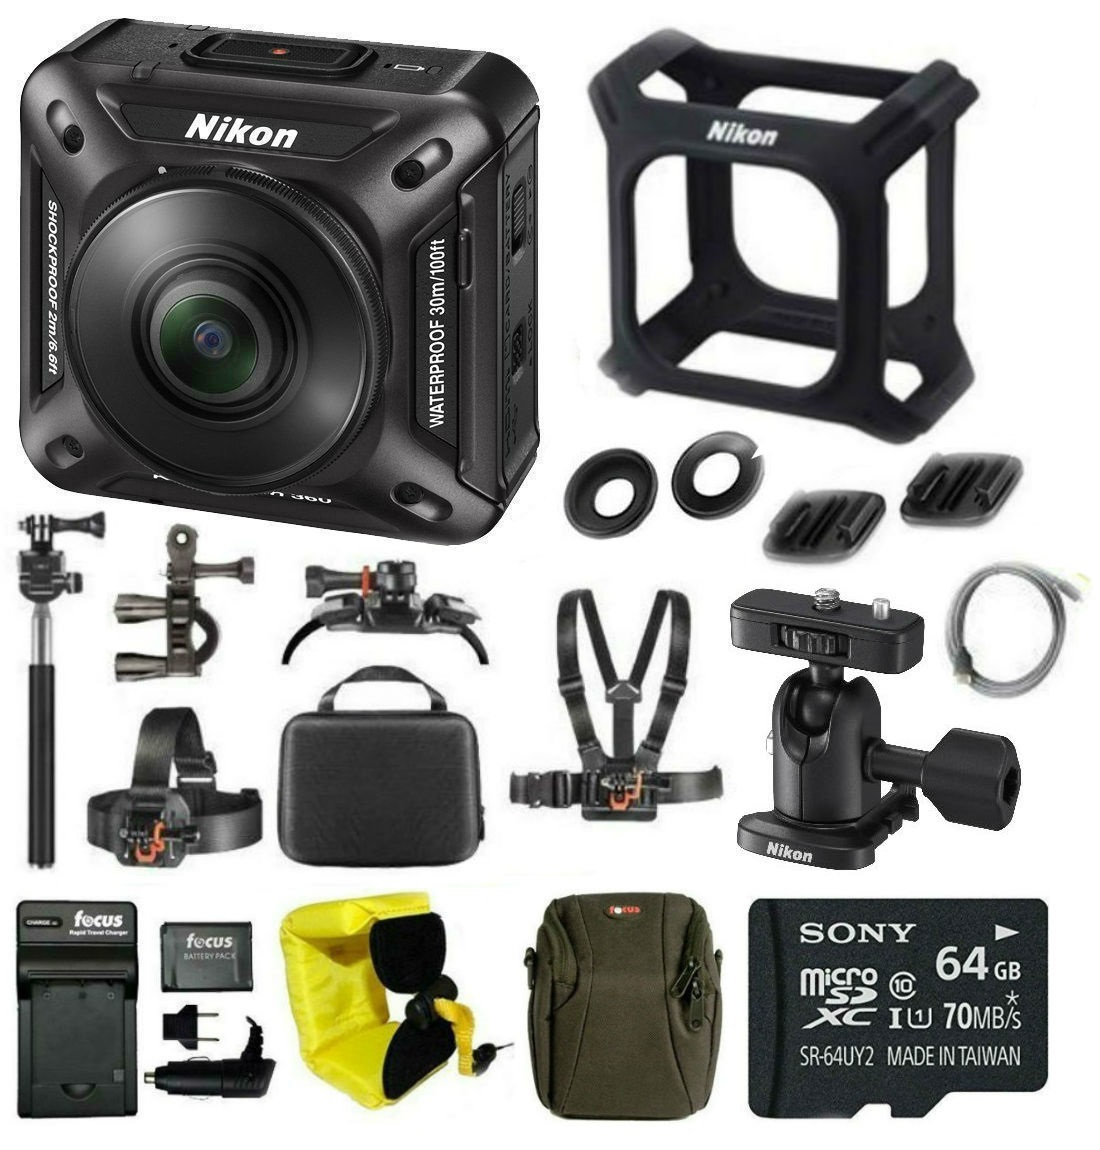 nikon keymission 360 wi-fi 4k action camera + sony 64gb class 10 memory card + accessory bundle